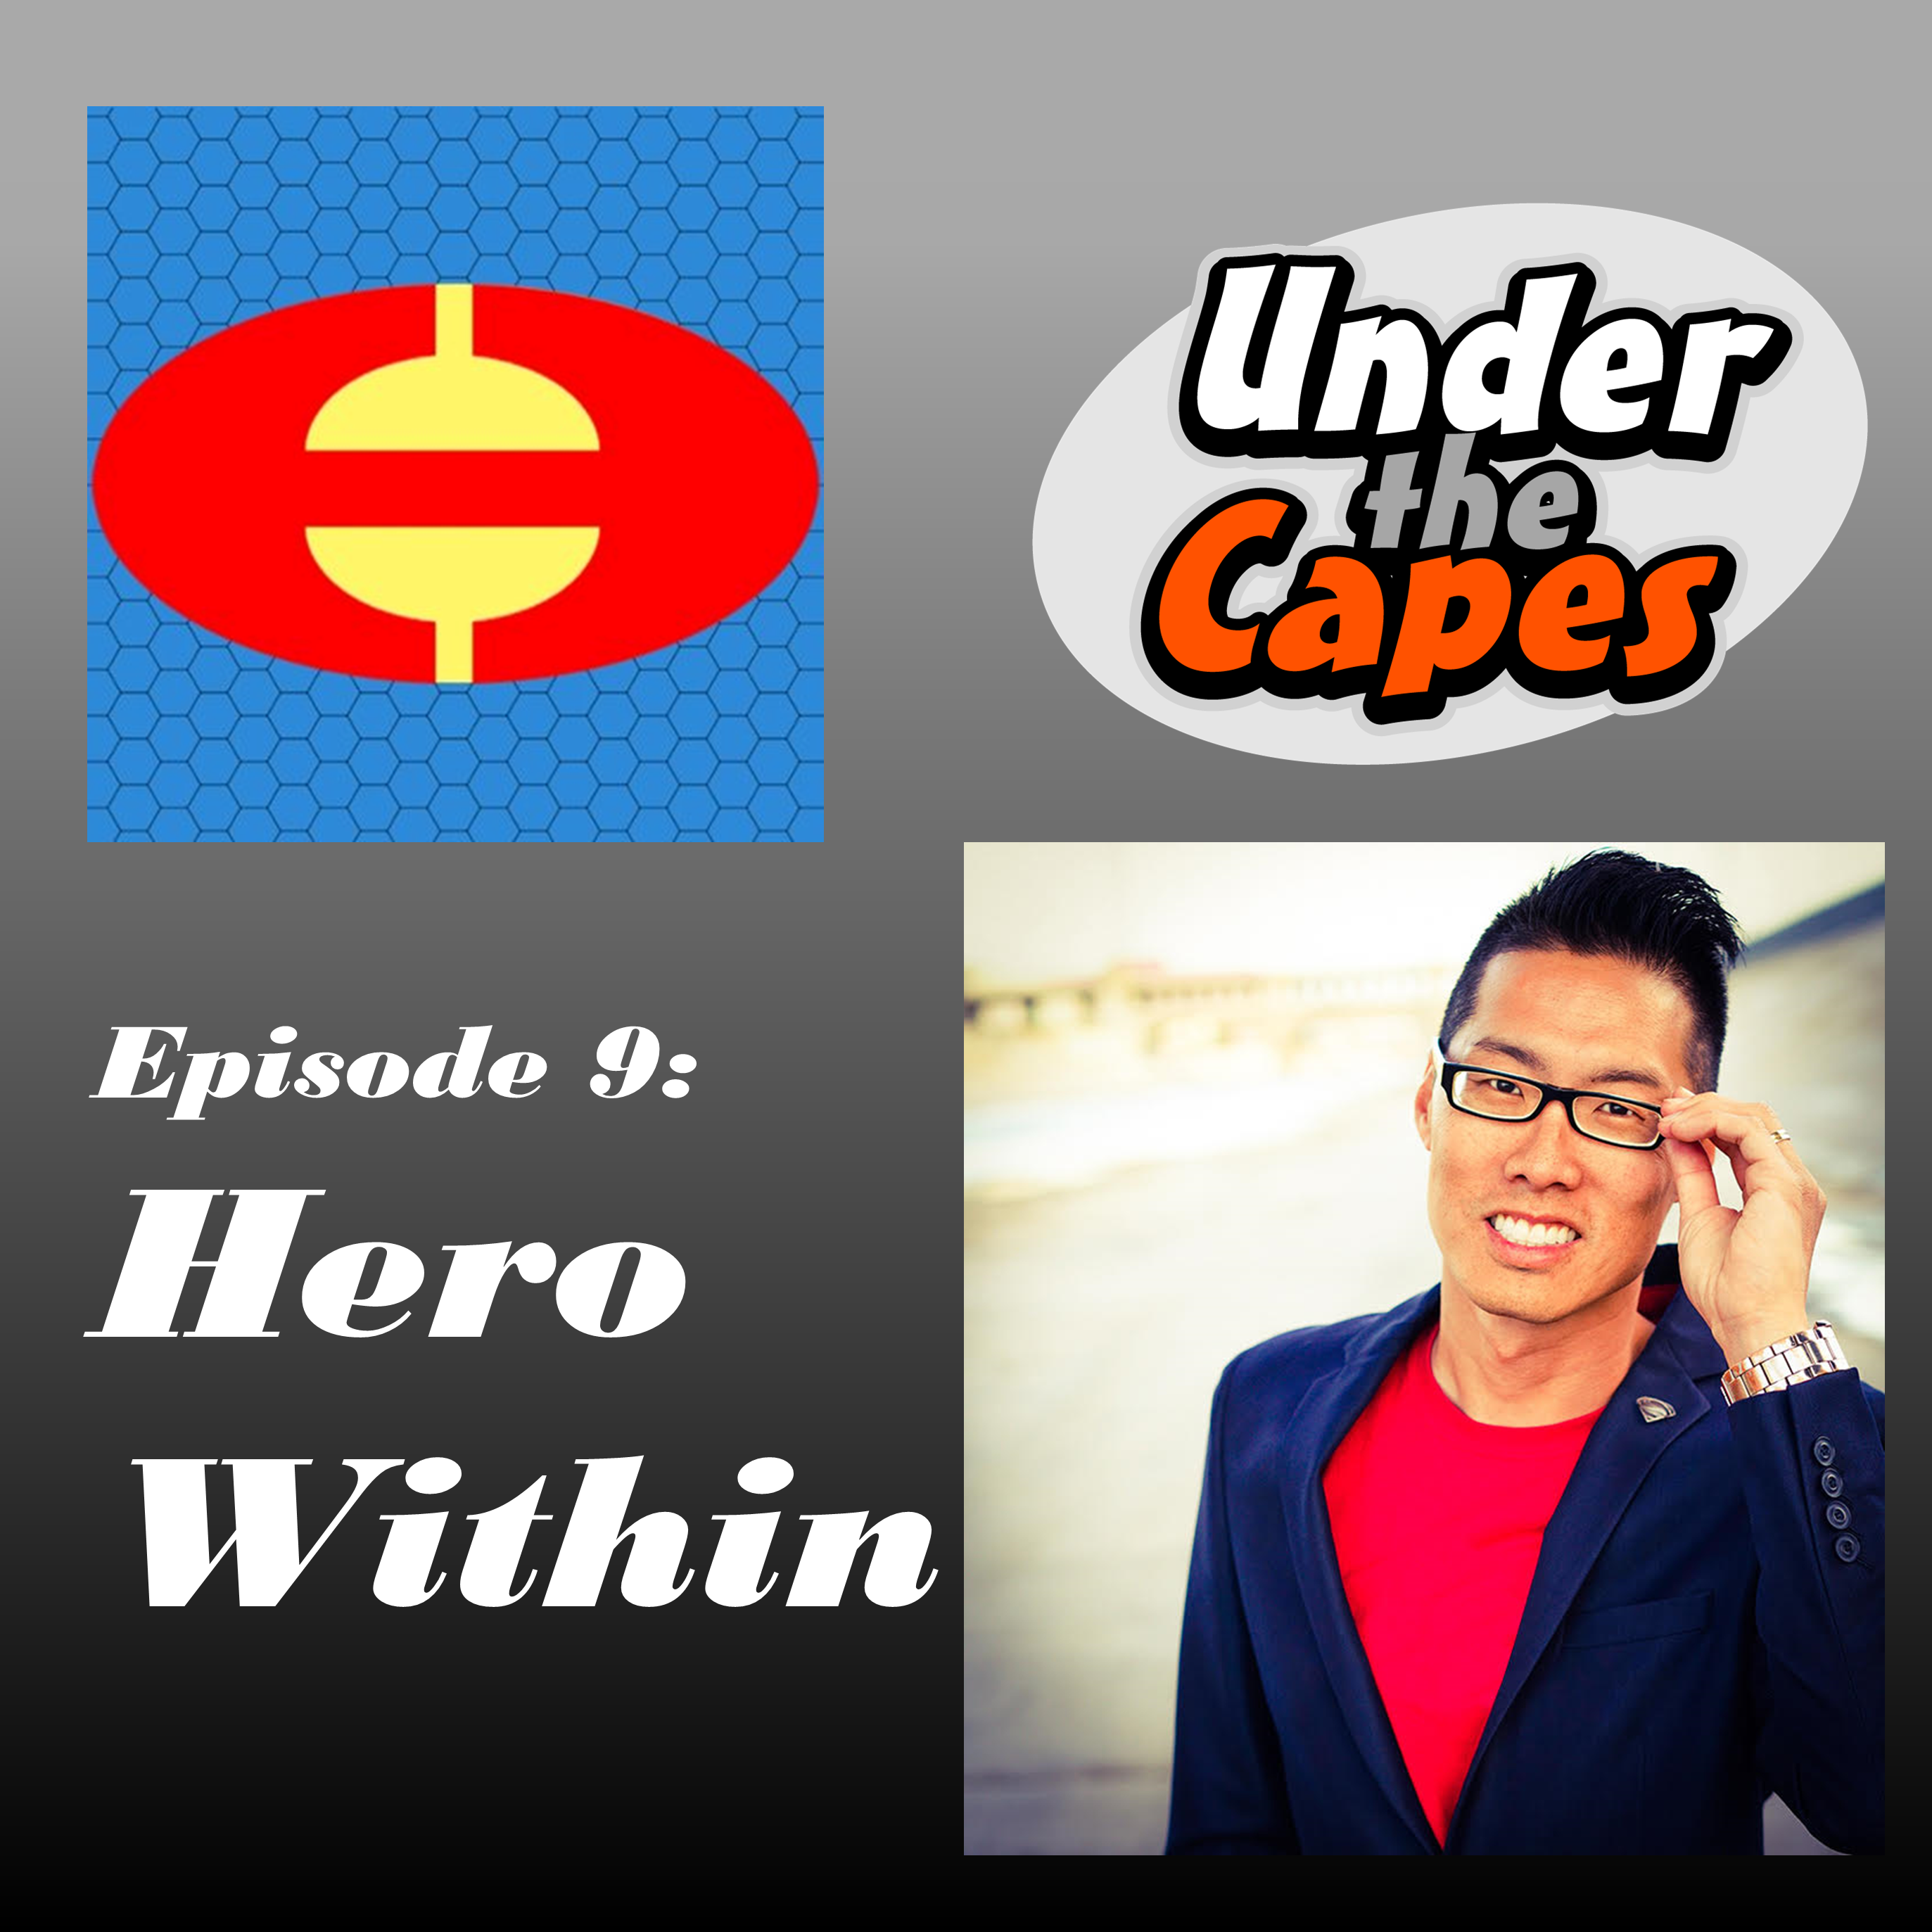 Episode 9: Hero Within